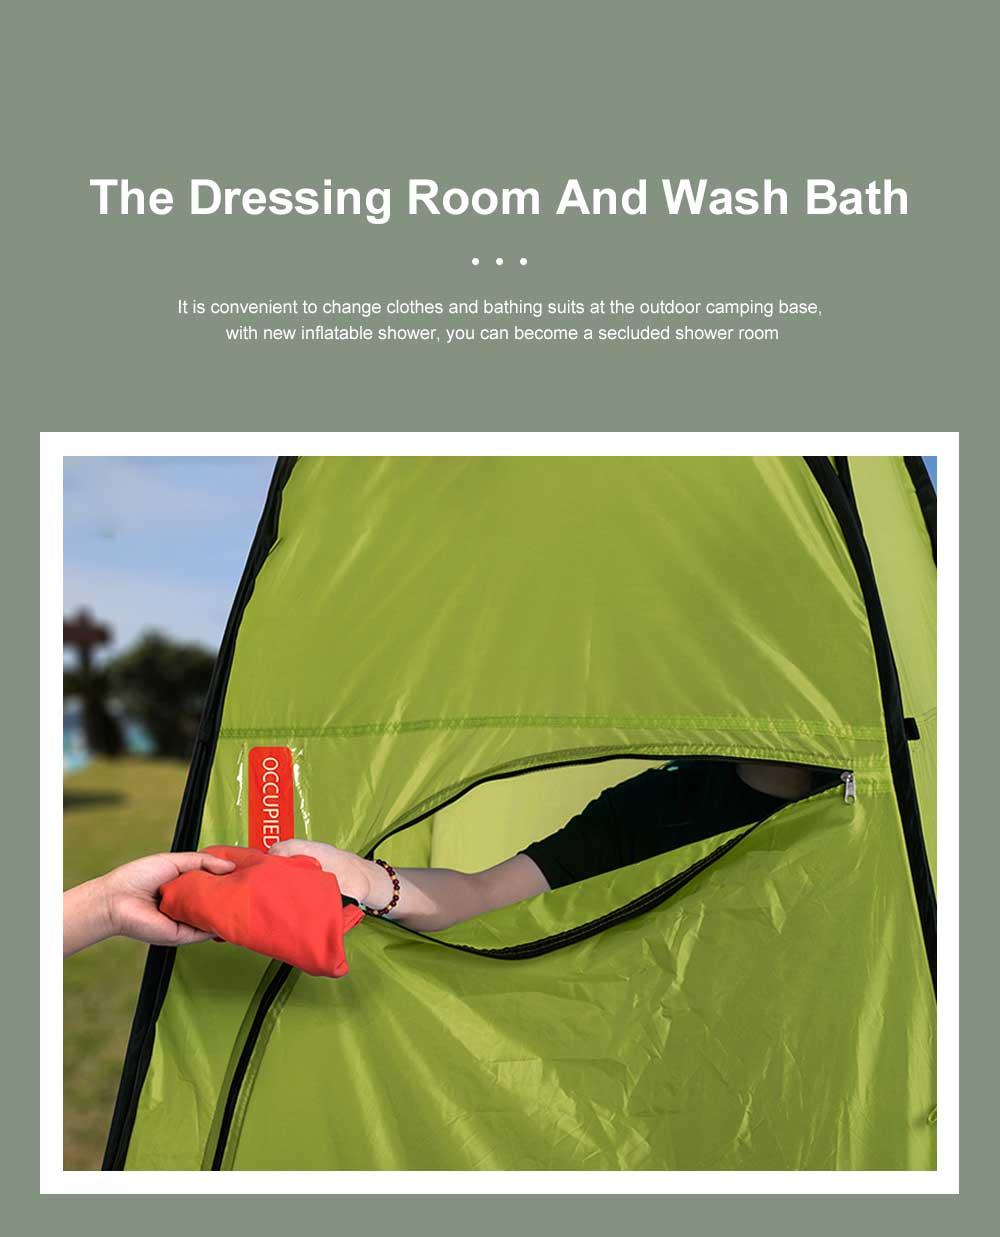 Outdoor Toilet Shower Bath Dressing Tent Beach Douche Room Restroom Portable Private Travel Waterproof Moveable Camping Tent 5